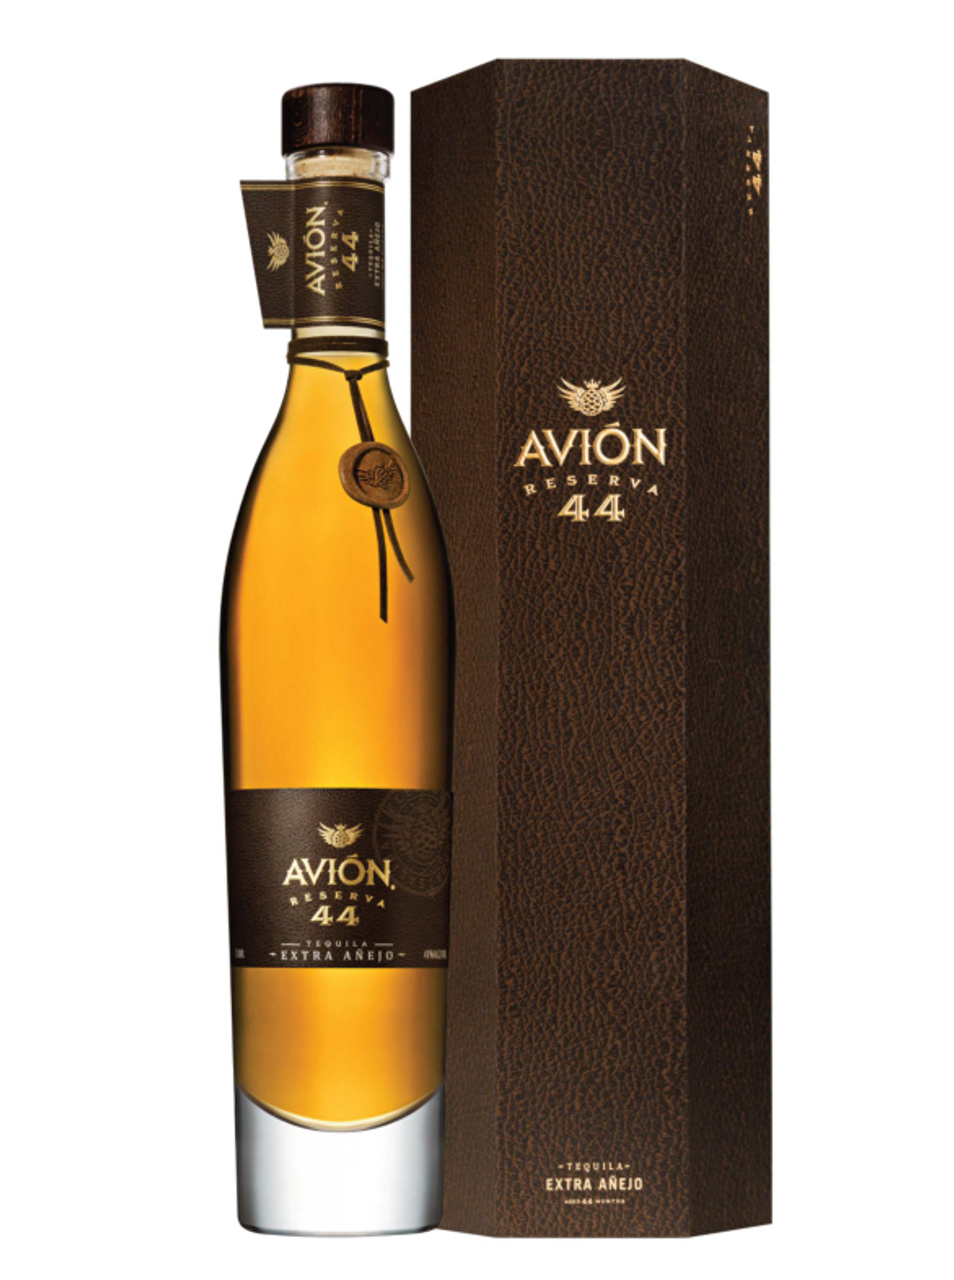 Avion Reserva 44 Extra Anejo Tequila Old Town Tequila